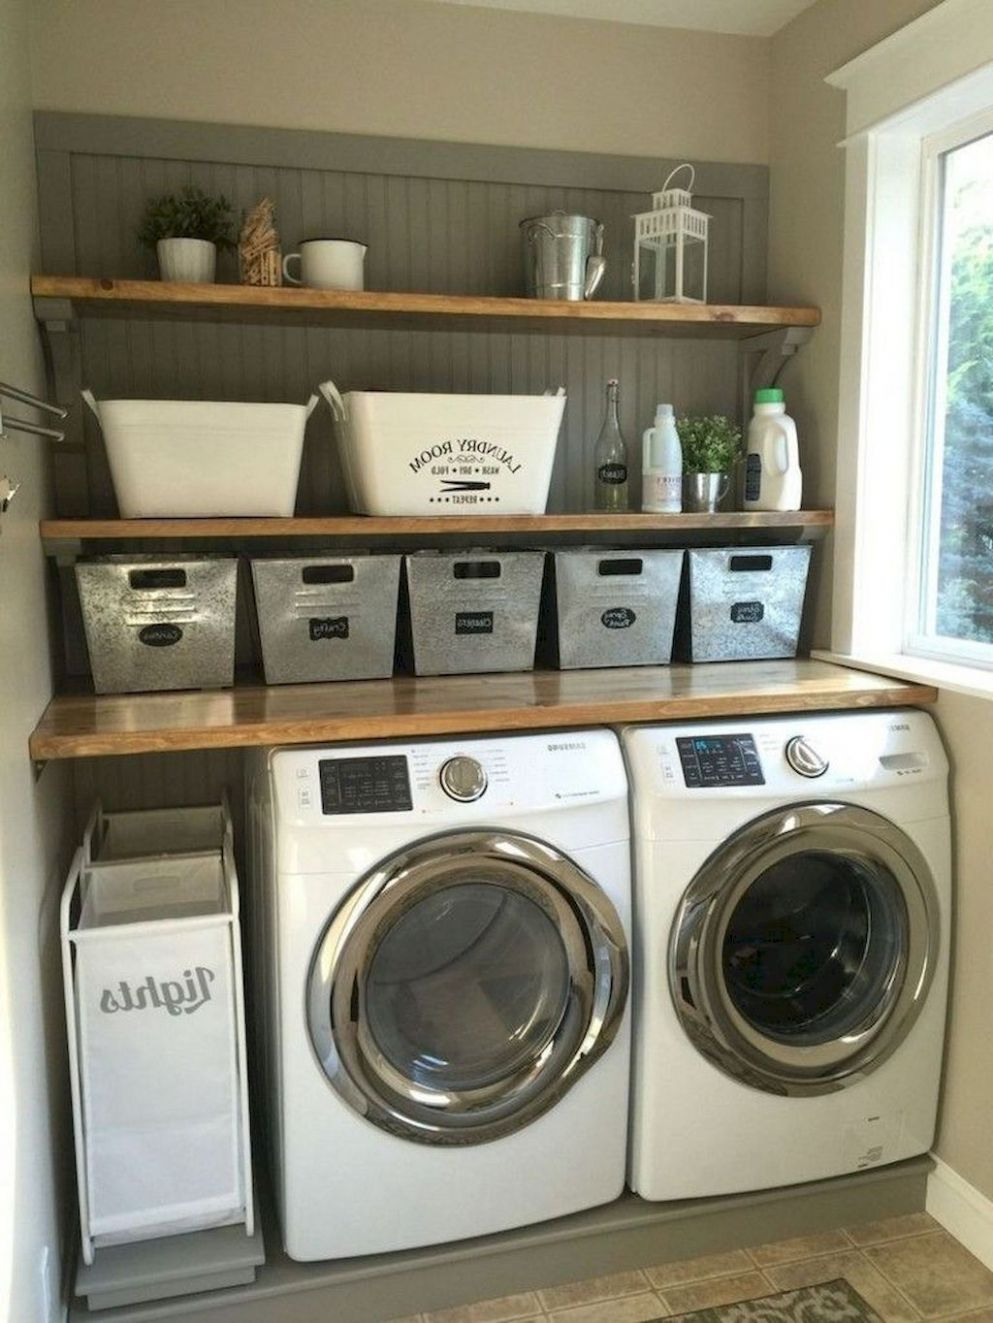 10 + Simple Functional Laundry Room Ideas | Laundry room layouts ...